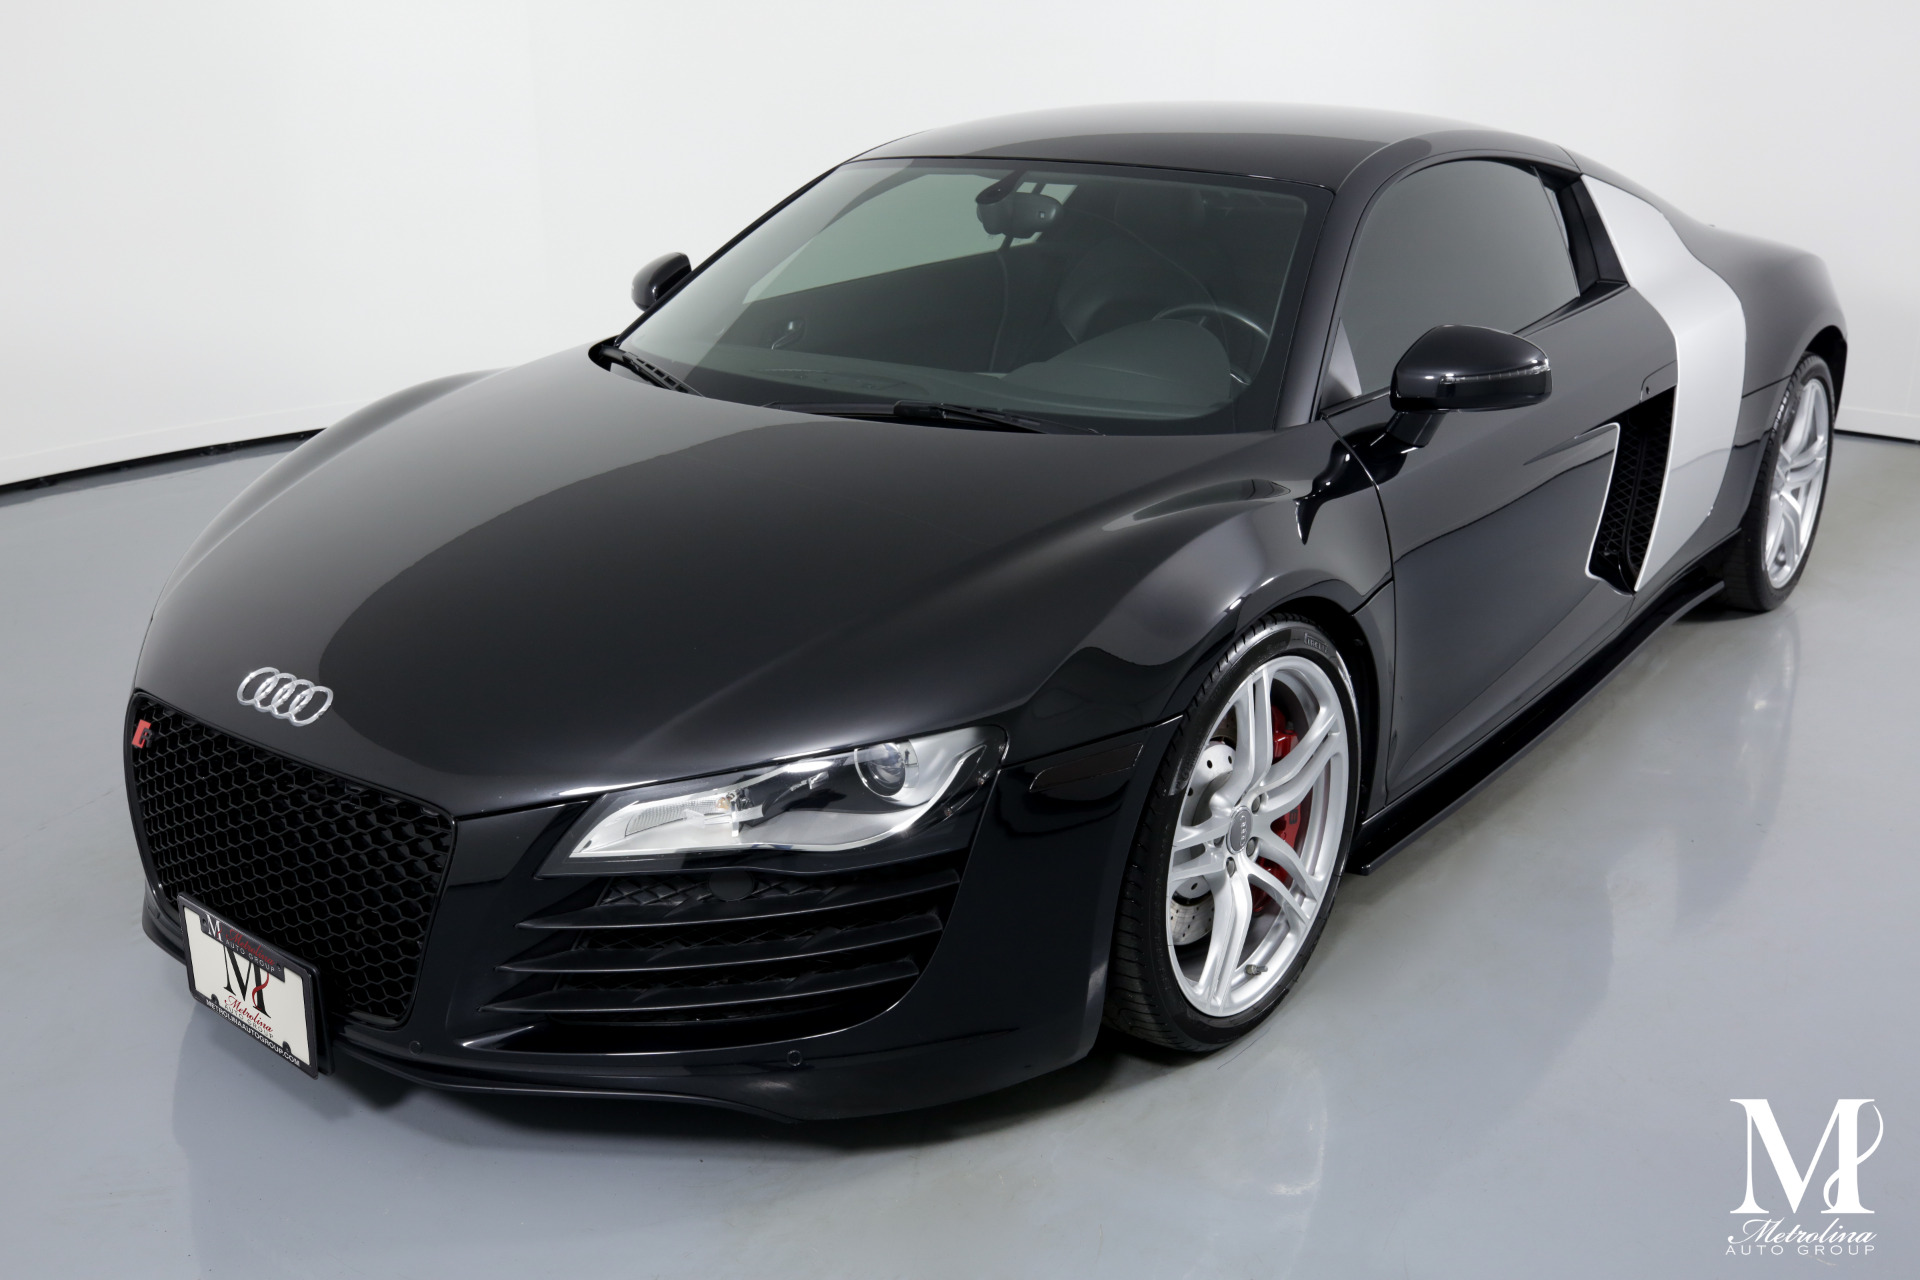 Used 2009 Audi R8 quattro for sale $62,996 at Metrolina Auto Group in Charlotte NC 28217 - 4